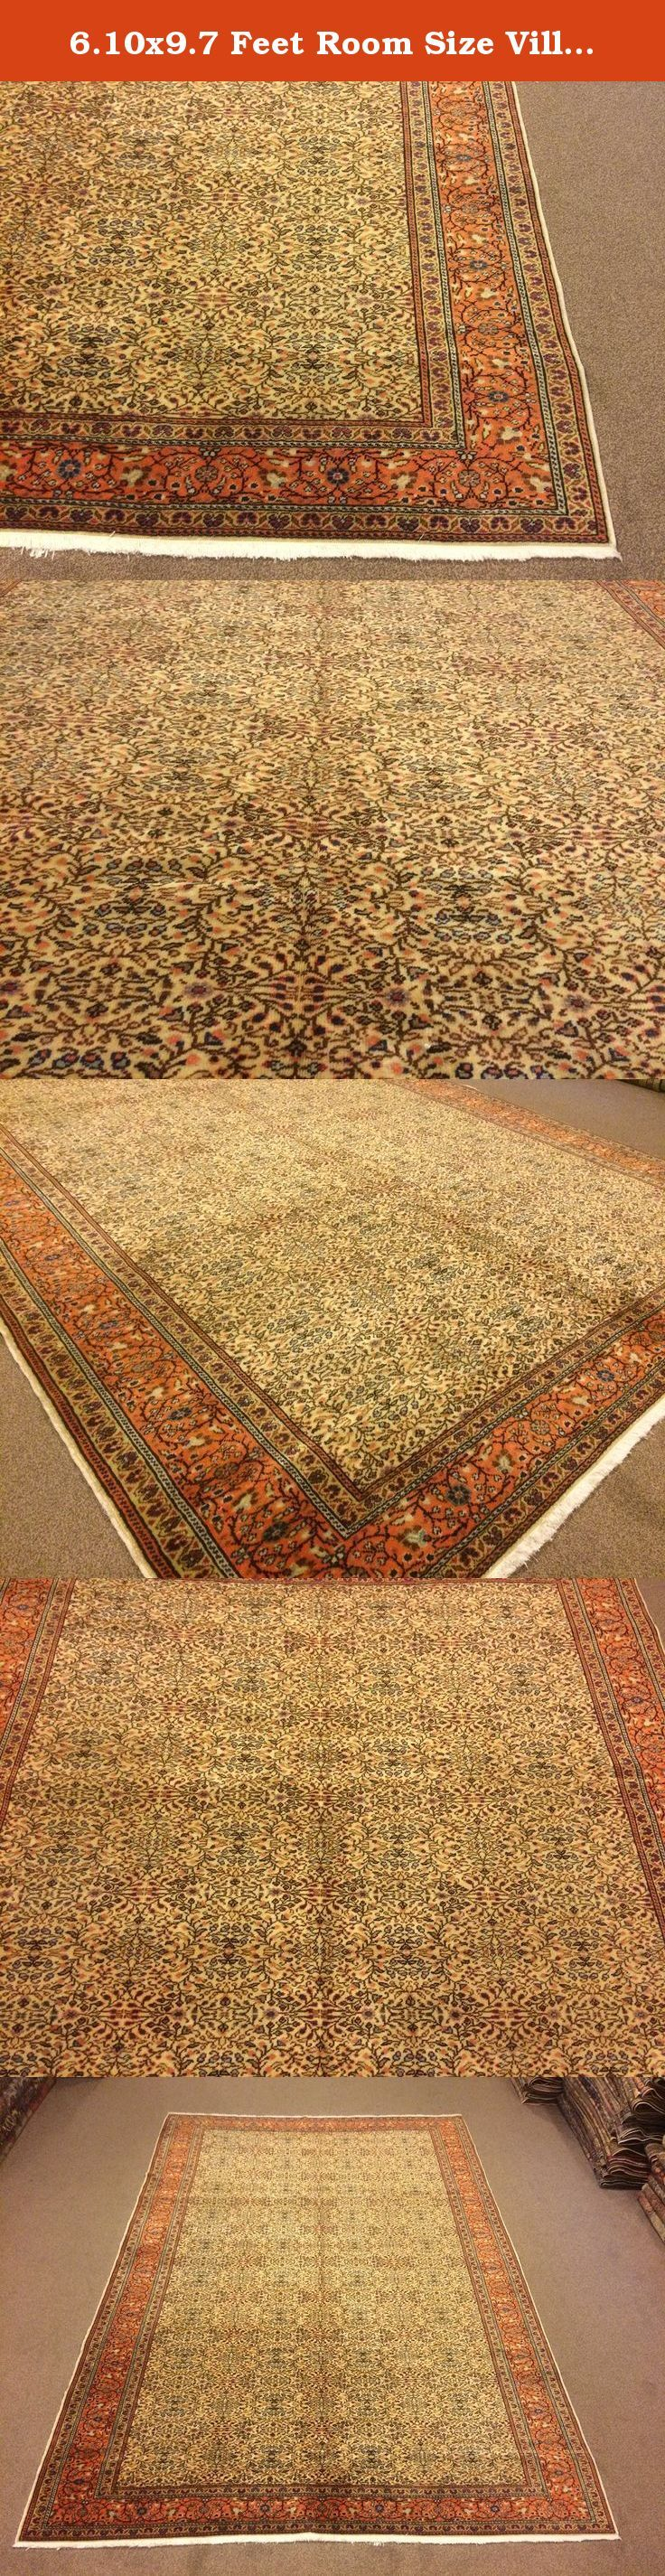 6.10x9.7 Feet Room Size Village Rug Vintage Rug Living Room Size Handmade Carpet Handmade Rug Handmade Big Rug Big Vintage Carpet Code:K569. It is %100 turkish carpet.All colours are natural dyed. Size:6.10x9.7 feet 207x290 cm Material:wool on cotton Code:K569 Fast Worldwide Shipment in 1-3 business days after the order and it may take an additional 3-5 days for delivery. All items are shipped by Fedex and Ups.Please note that light effect, monitor's brightness, contrast etc. may cause a...